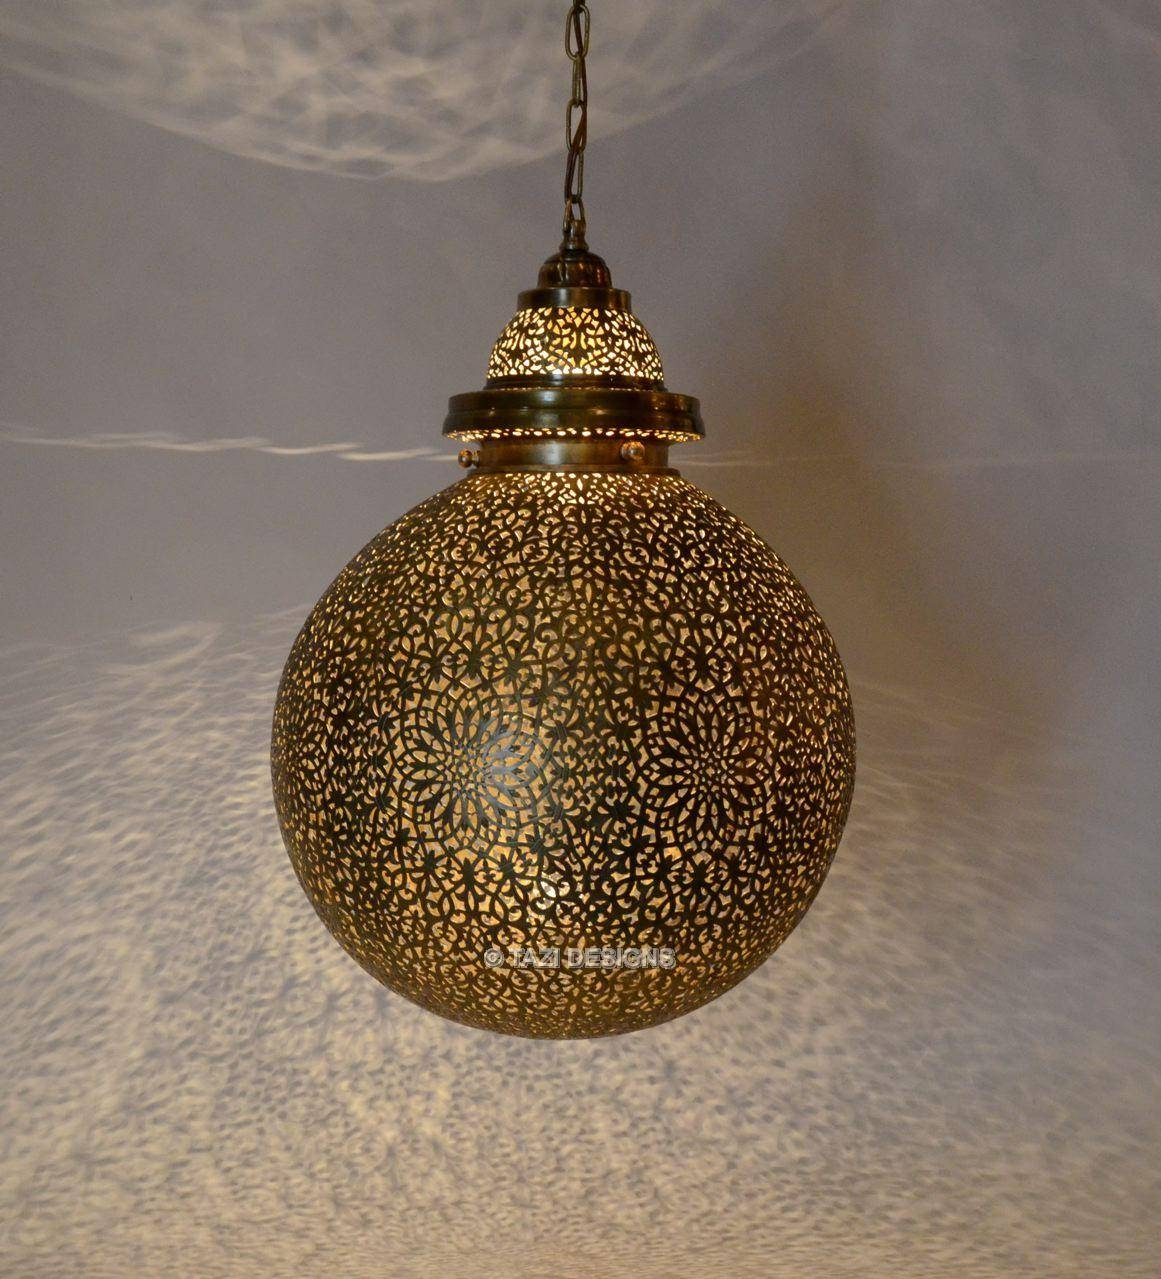 Moroccan Pendant Light Bulb Filigree with Moroccan Style Pendant Ceiling Lights (Image 9 of 15)